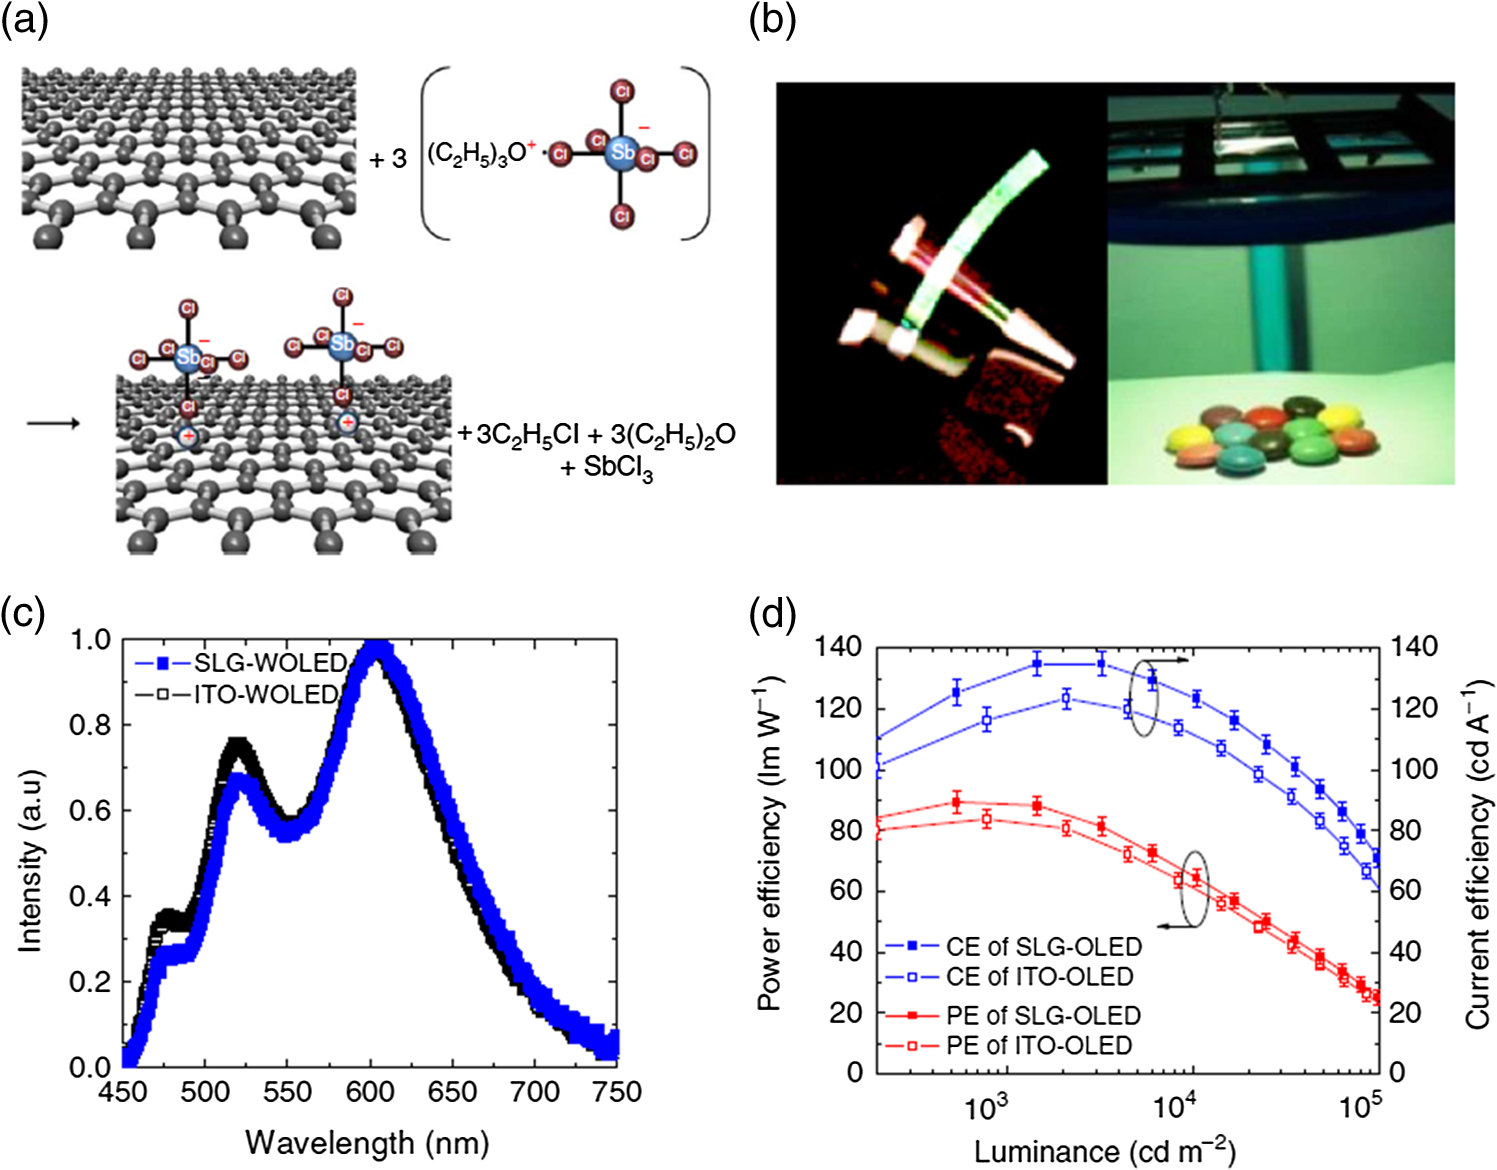 Flexible Organic Light Emitting Diodes For Solid State Lighting Diode Circuit Of The Temperature Control And D Power Efficiencies Current White Phosphorescent Oleds With Enhanced Out Coupling Using Graphene Ito Anode